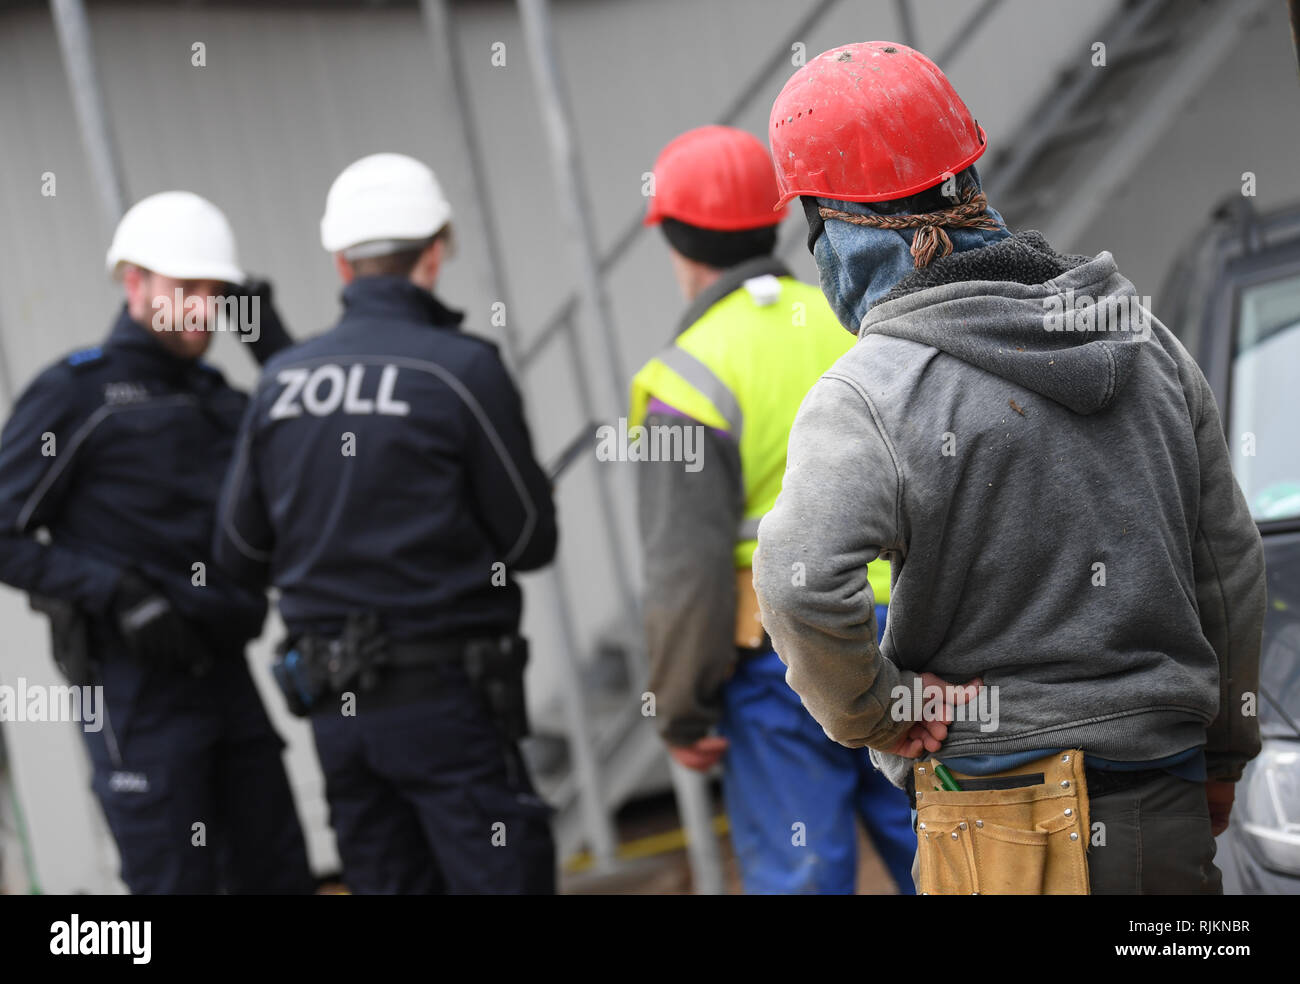 07 February 2019, Hessen, Frankfurt/Main: Customs officers inspect construction workers during a mission on a large construction site in the Niederrad district. The Special Unit Financial Control of Undeclared Work (FKS) takes action against illegal employment, minimum wage violations and social benefit abuse. Photo: Arne Dedert/dpa Stock Photo